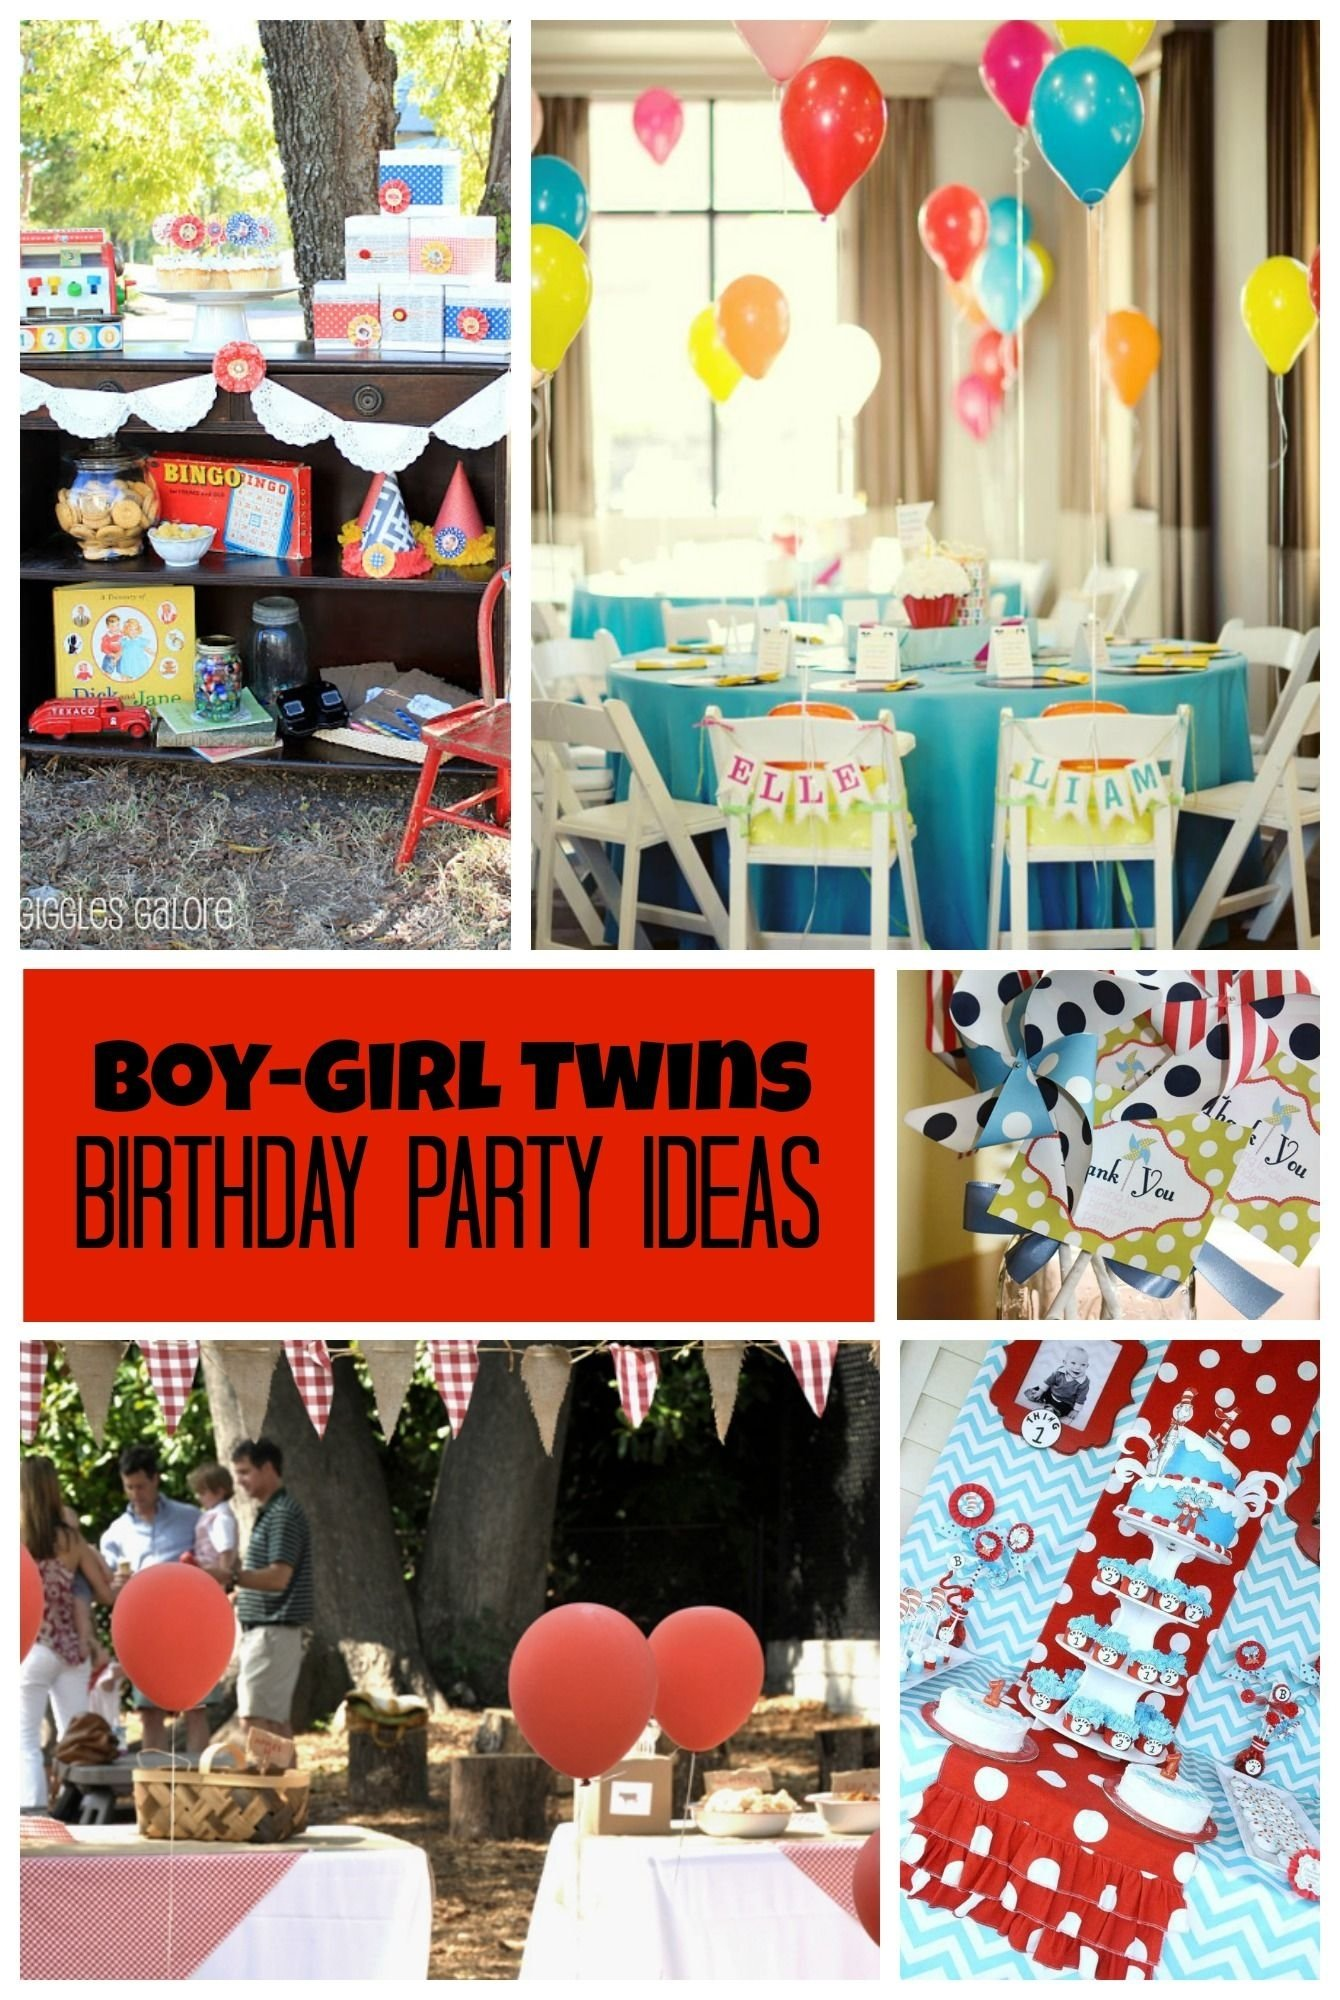 10 Lovely Boy And Girl Birthday Party Ideas